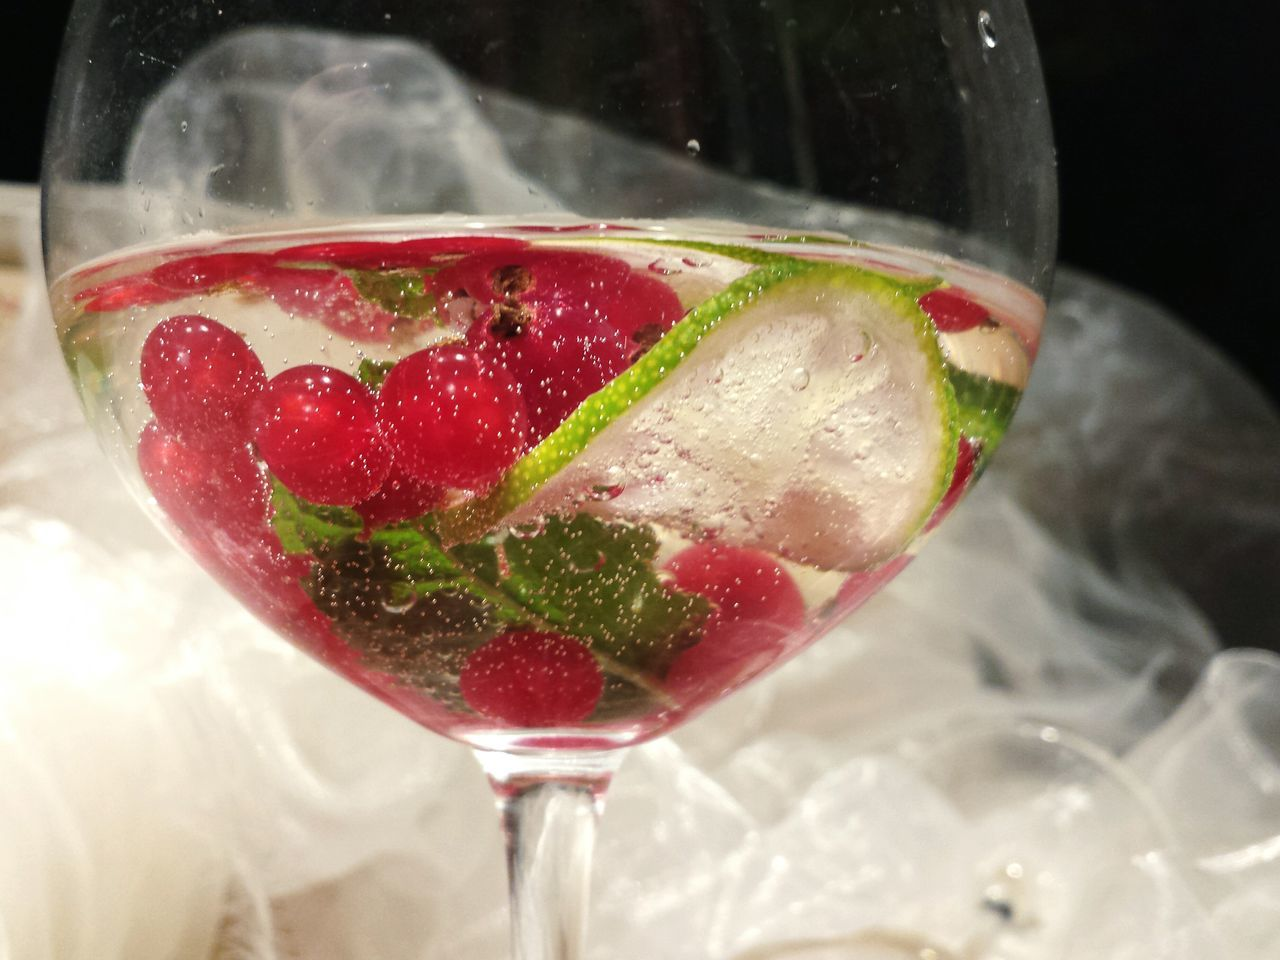 Low Angle View Of Cocktail In Glass